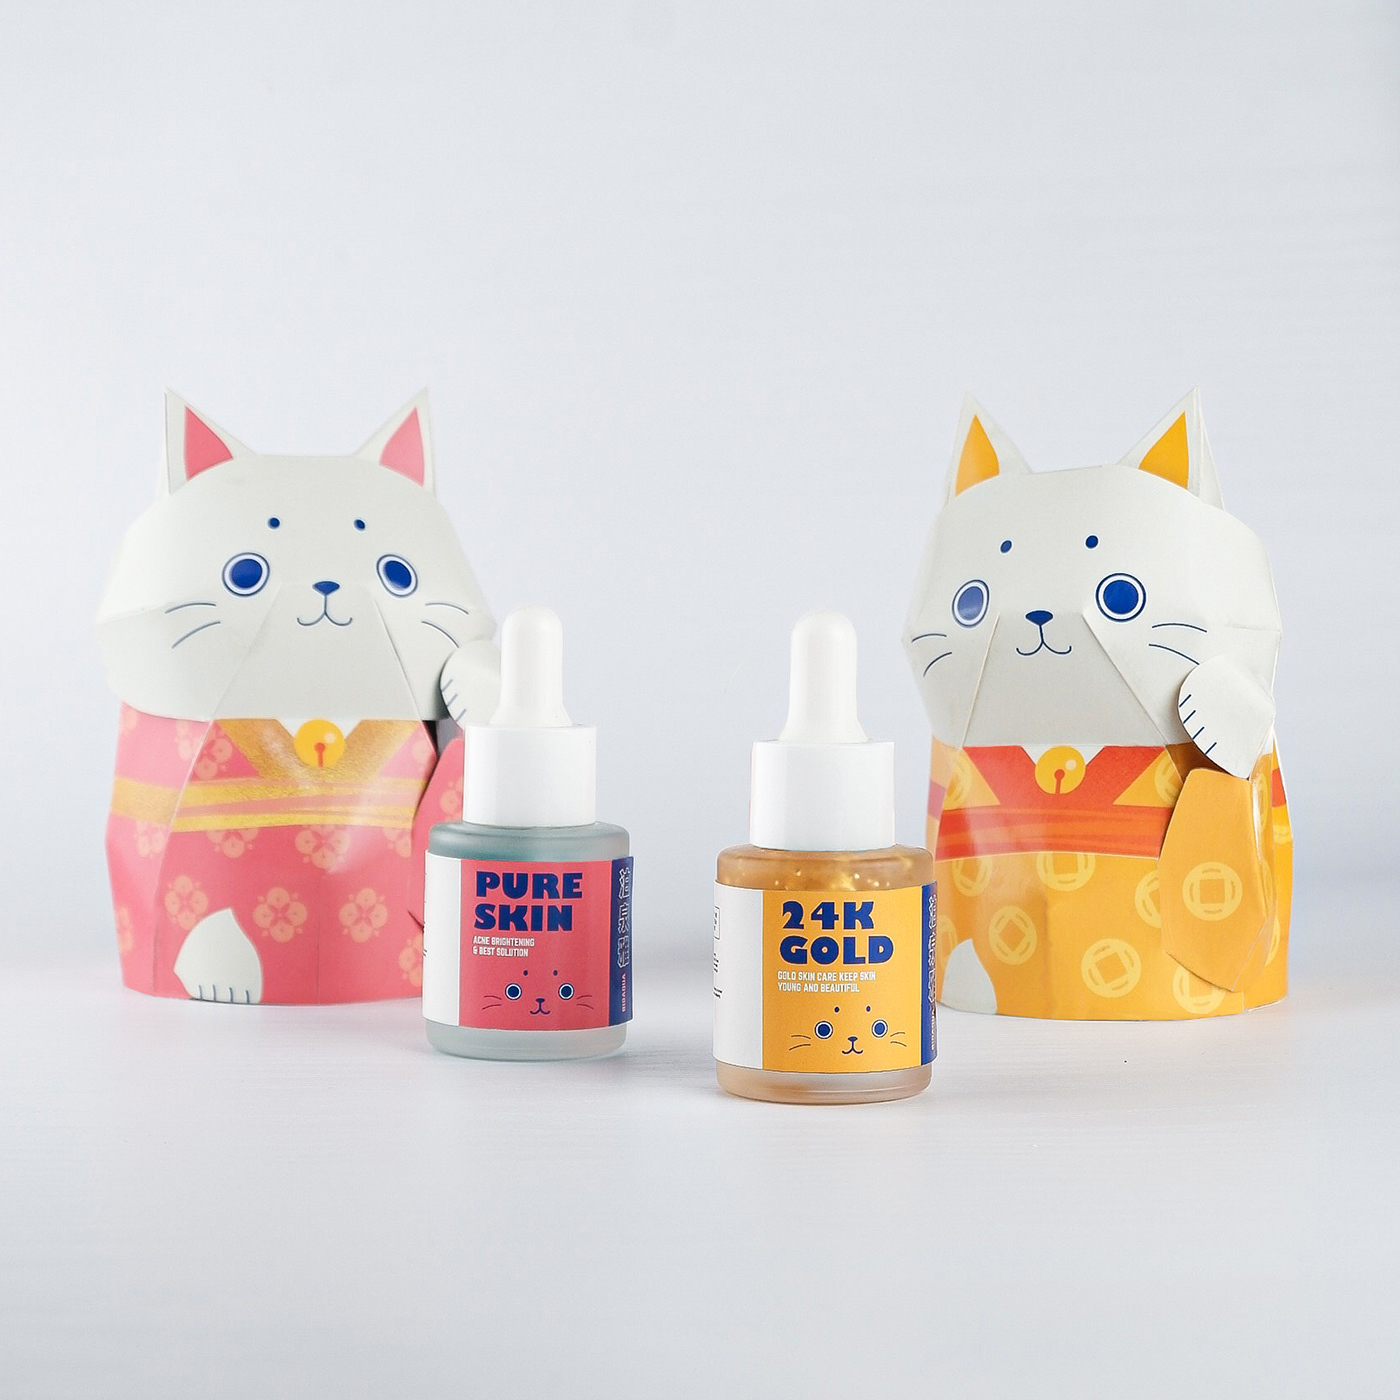 chinese creative graphic design  ILLUSTRATION  japanese Layout Packaging Photography  product skincare